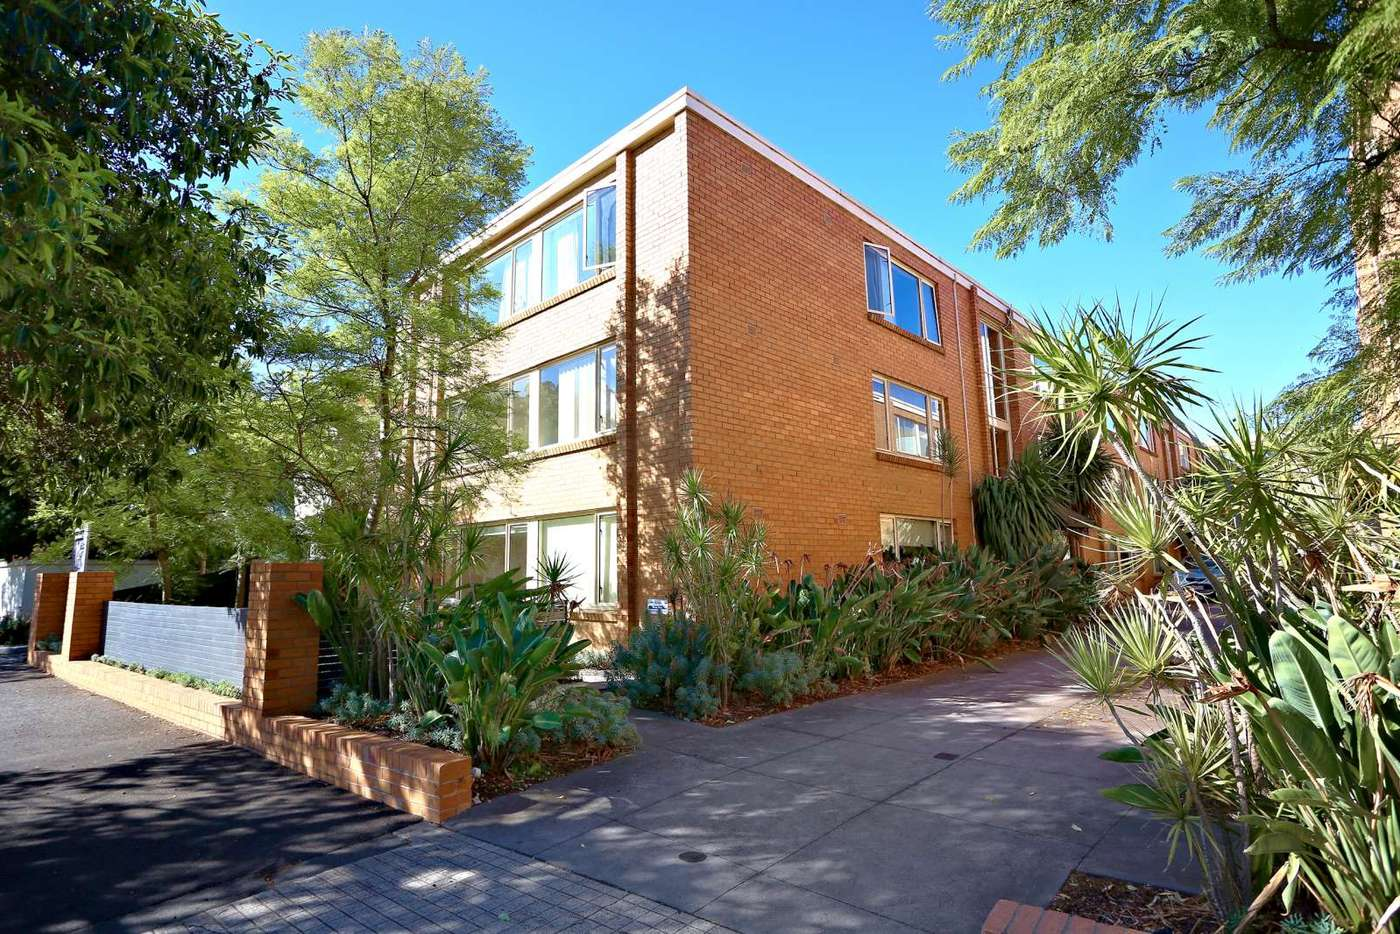 Main view of Homely apartment listing, 3/92 The Avenue, Parkville VIC 3052